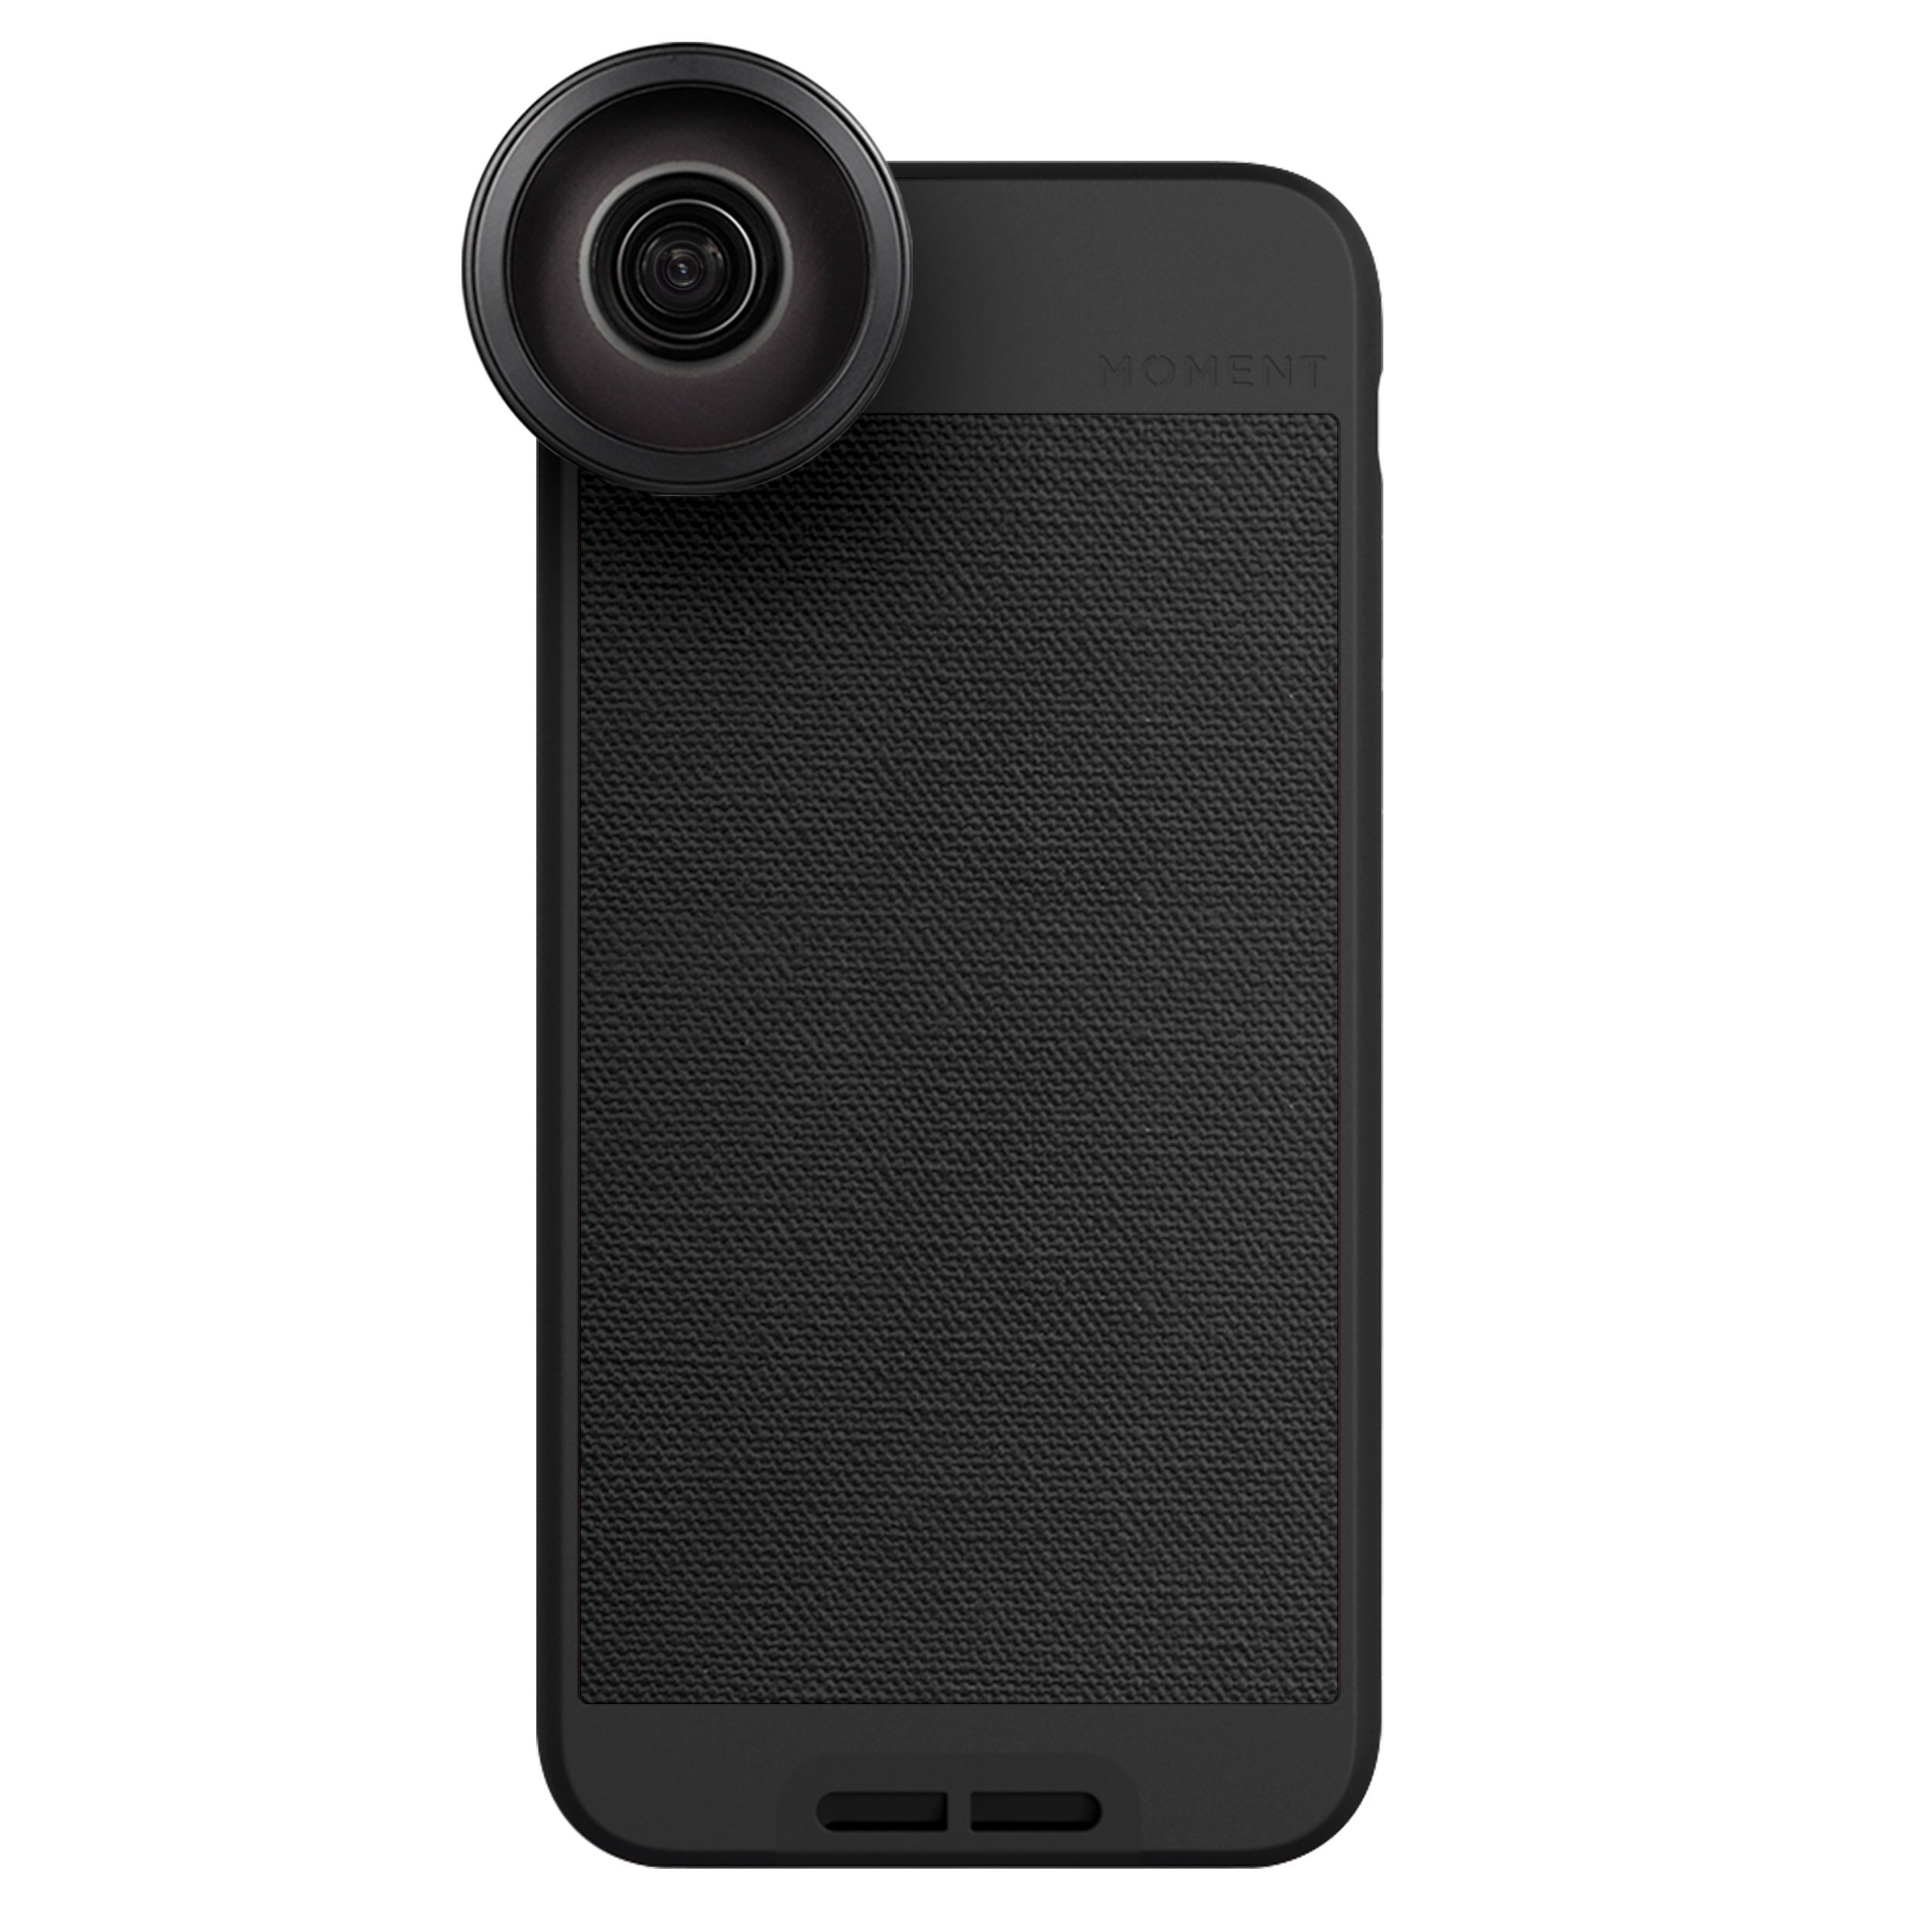 iPhone 6 Case with Fisheye Lens Kit || Moment Black Canvas Photo Case plus Superfish Lens || Best iphone fisheye attachment lens with thin protective case.